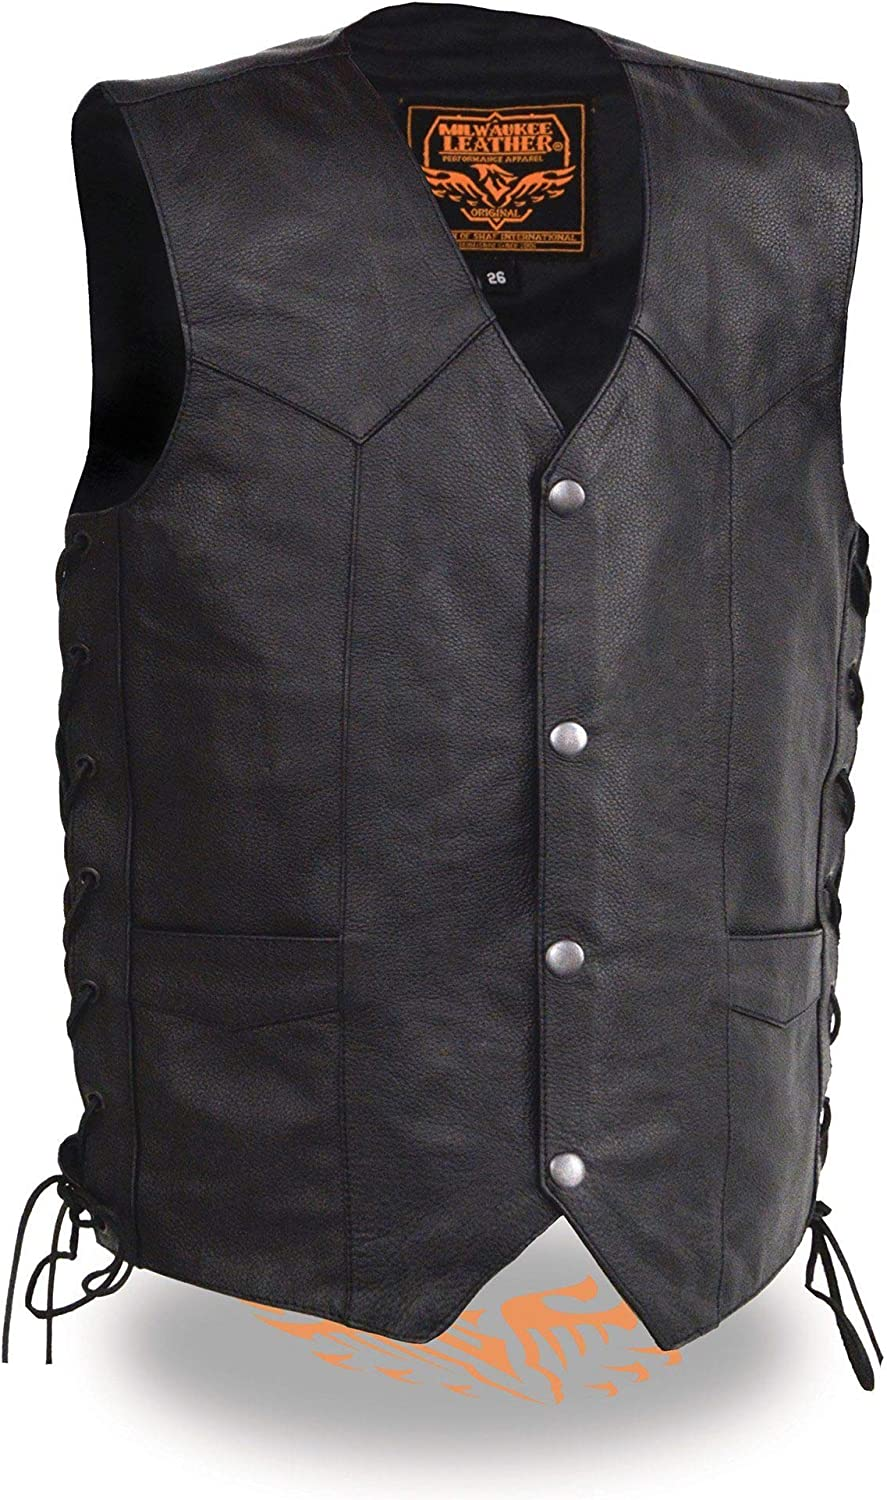 Milwaukee Leather LKY3860-BLK-20 Boys Youth Size Leather Side Lace Biker Vest Black Size 20